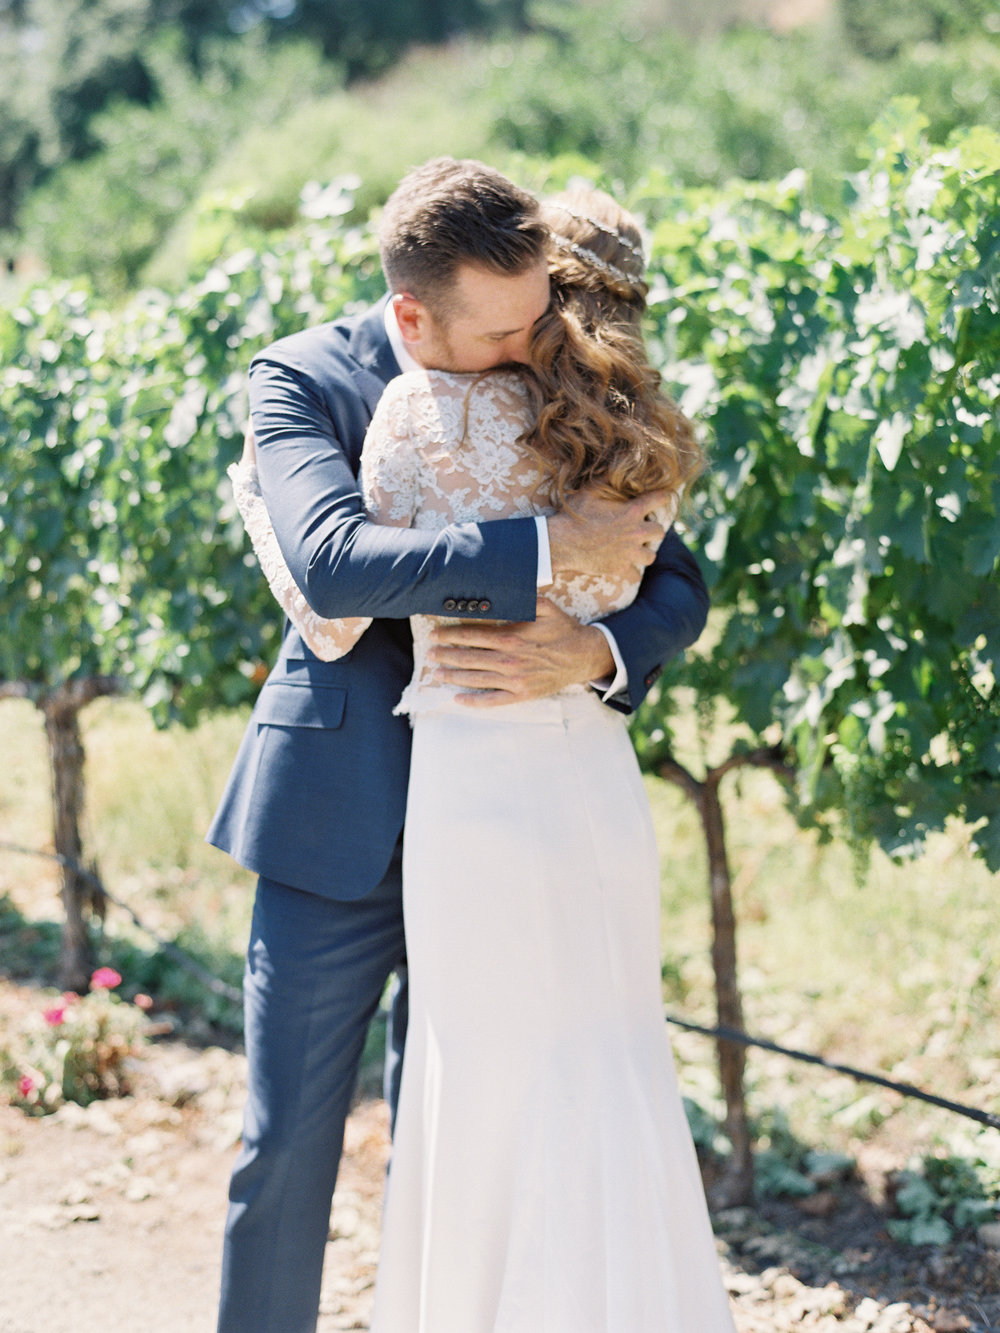 Napa Wedding Photographer - Meghan Mehan Photography _005.jpg